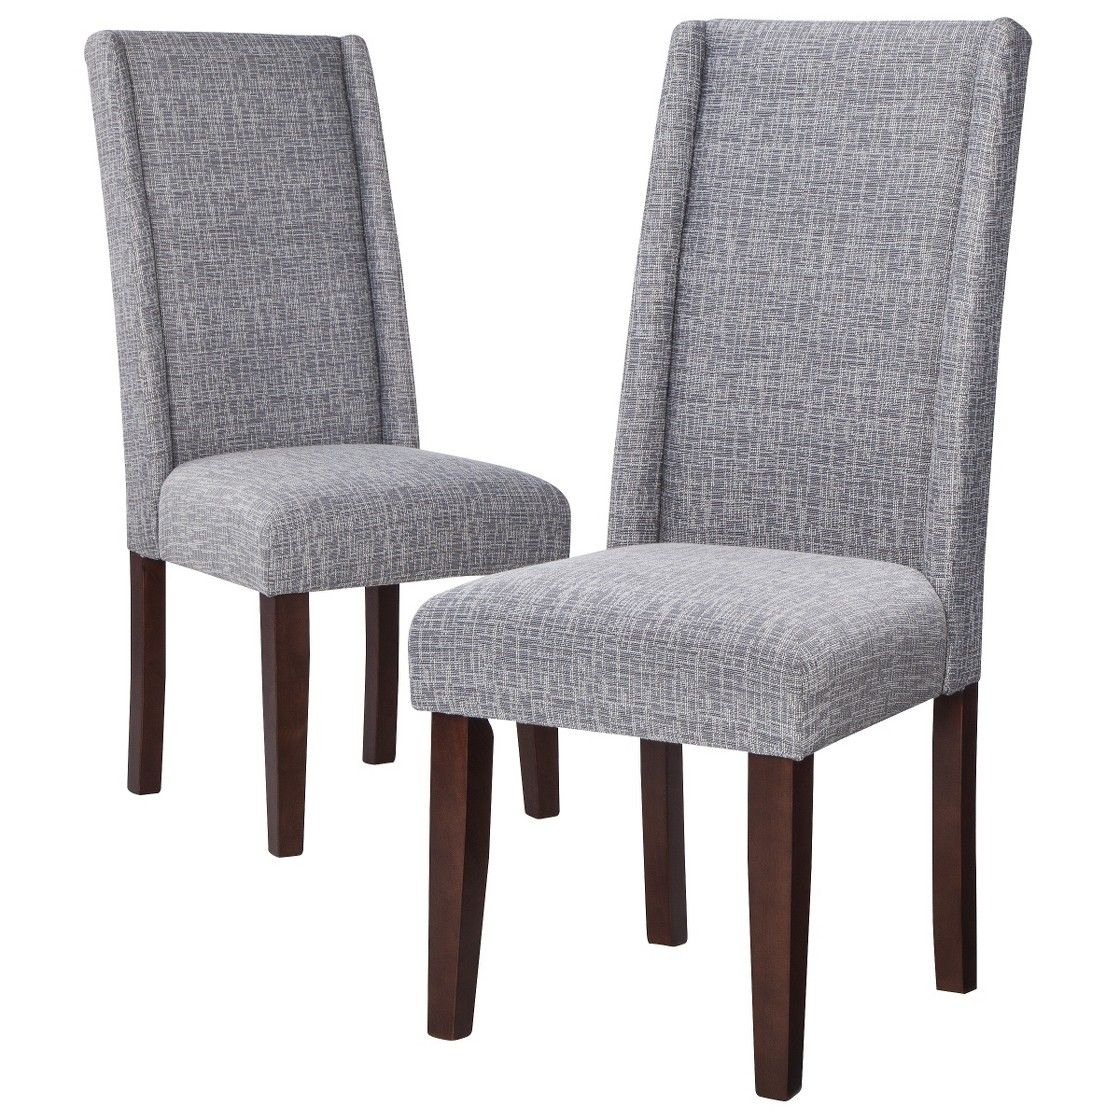 Marvelous Charlie Modern Wingback Dining Chair Textured Grey Set Of Caraccident5 Cool Chair Designs And Ideas Caraccident5Info